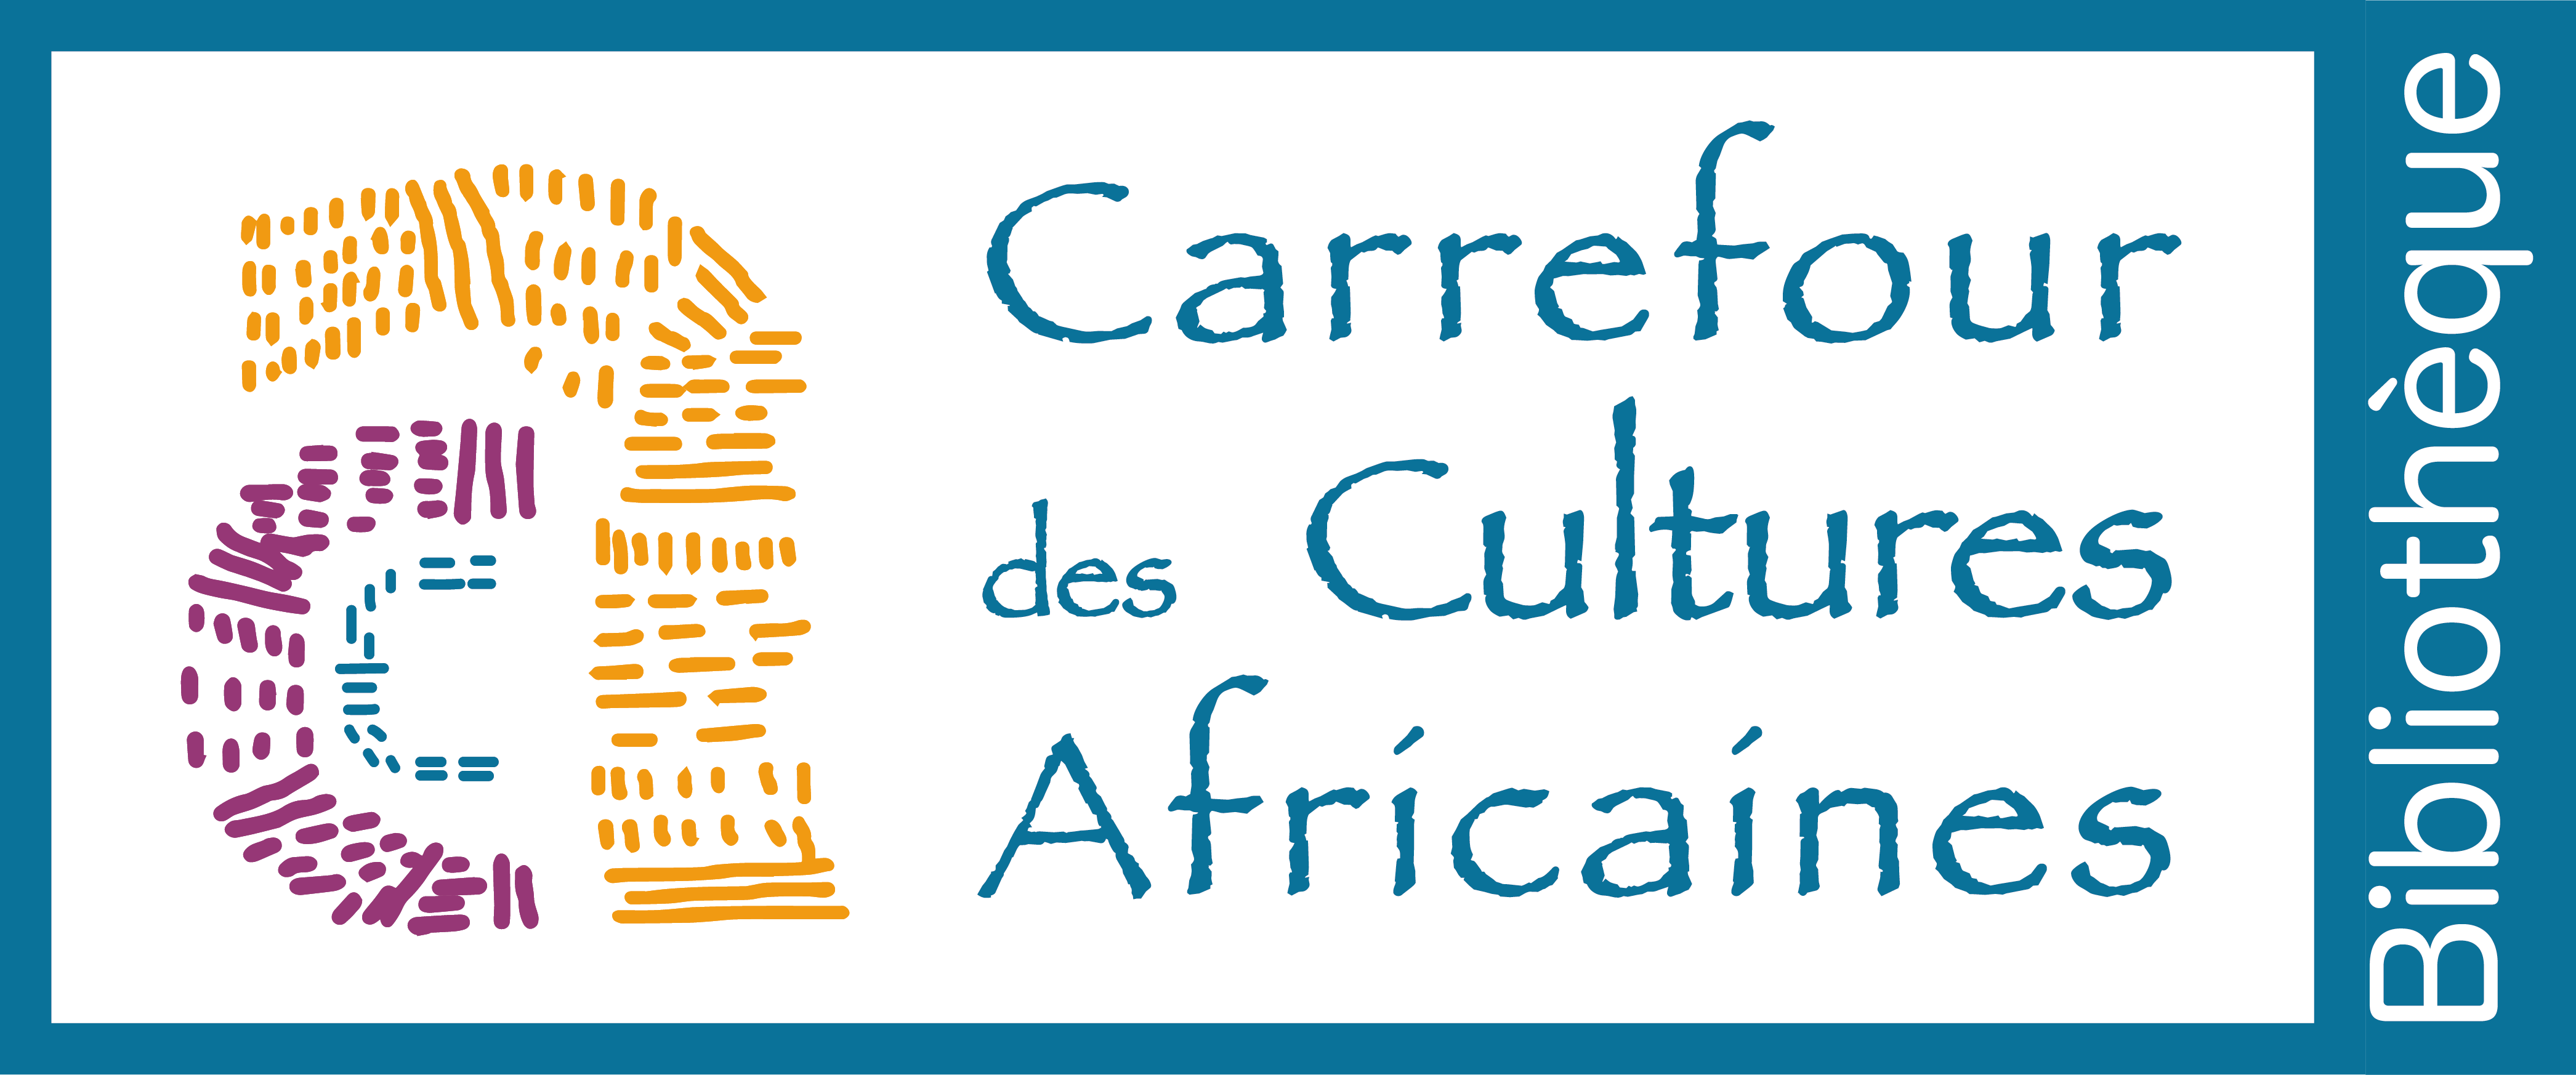 Carrefour des Cultures Africaines